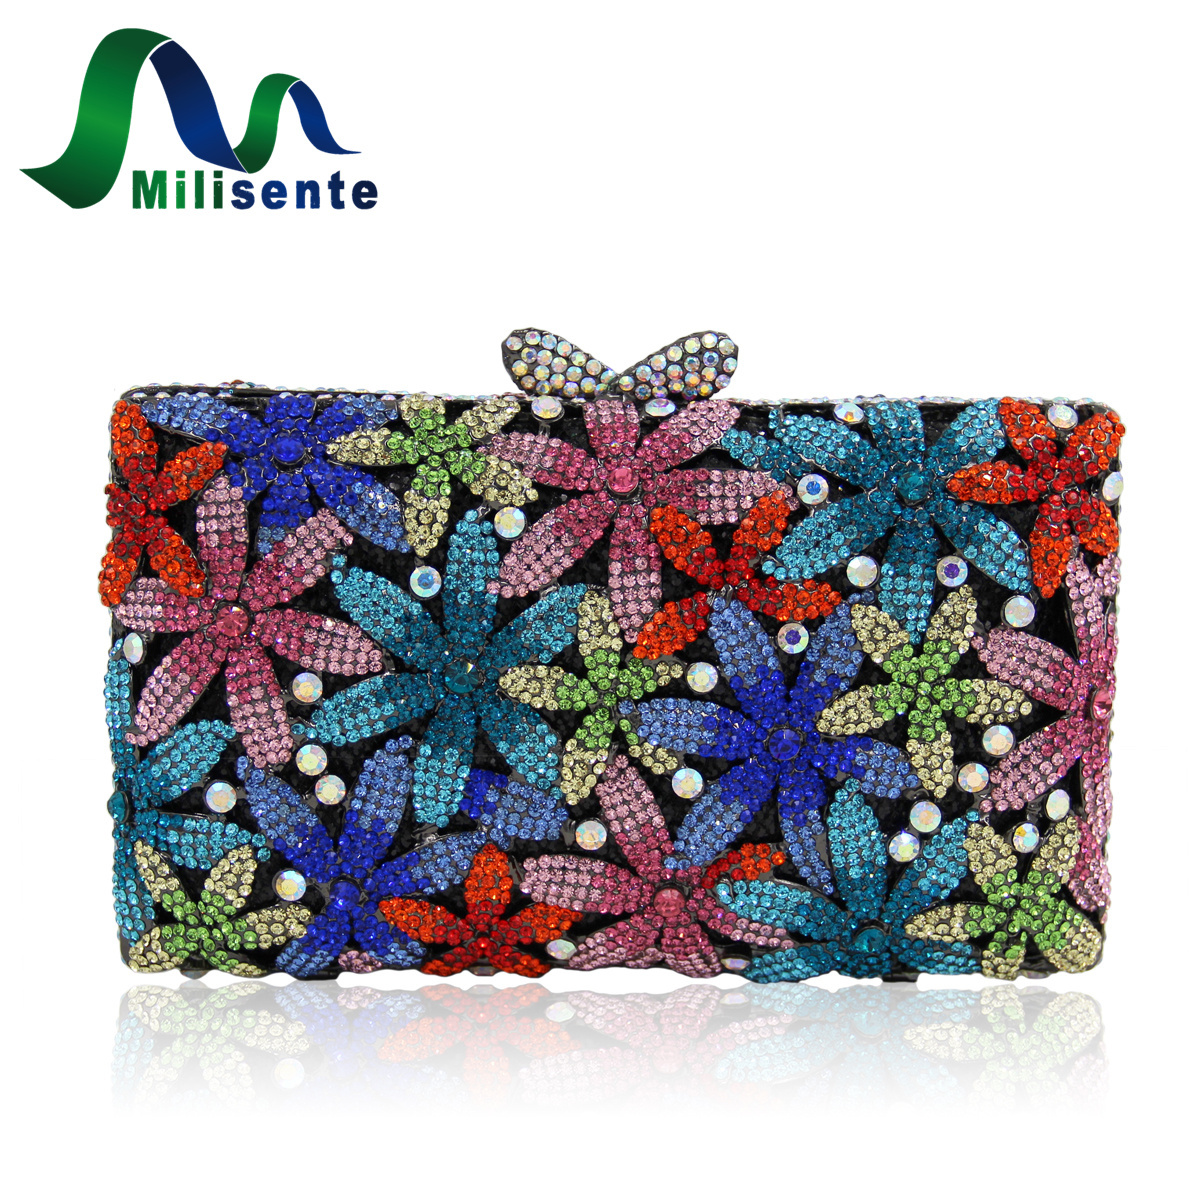 Milisente Brand Designer Handbags Pink Women Clutch Bags Gold Wedding Clutches Female Evening Bag Lady Party Purse With Chain luxury designer gold clutches flap women evening bags long chain tassel shoulder bag wedding party rhinestone clutch purse l897